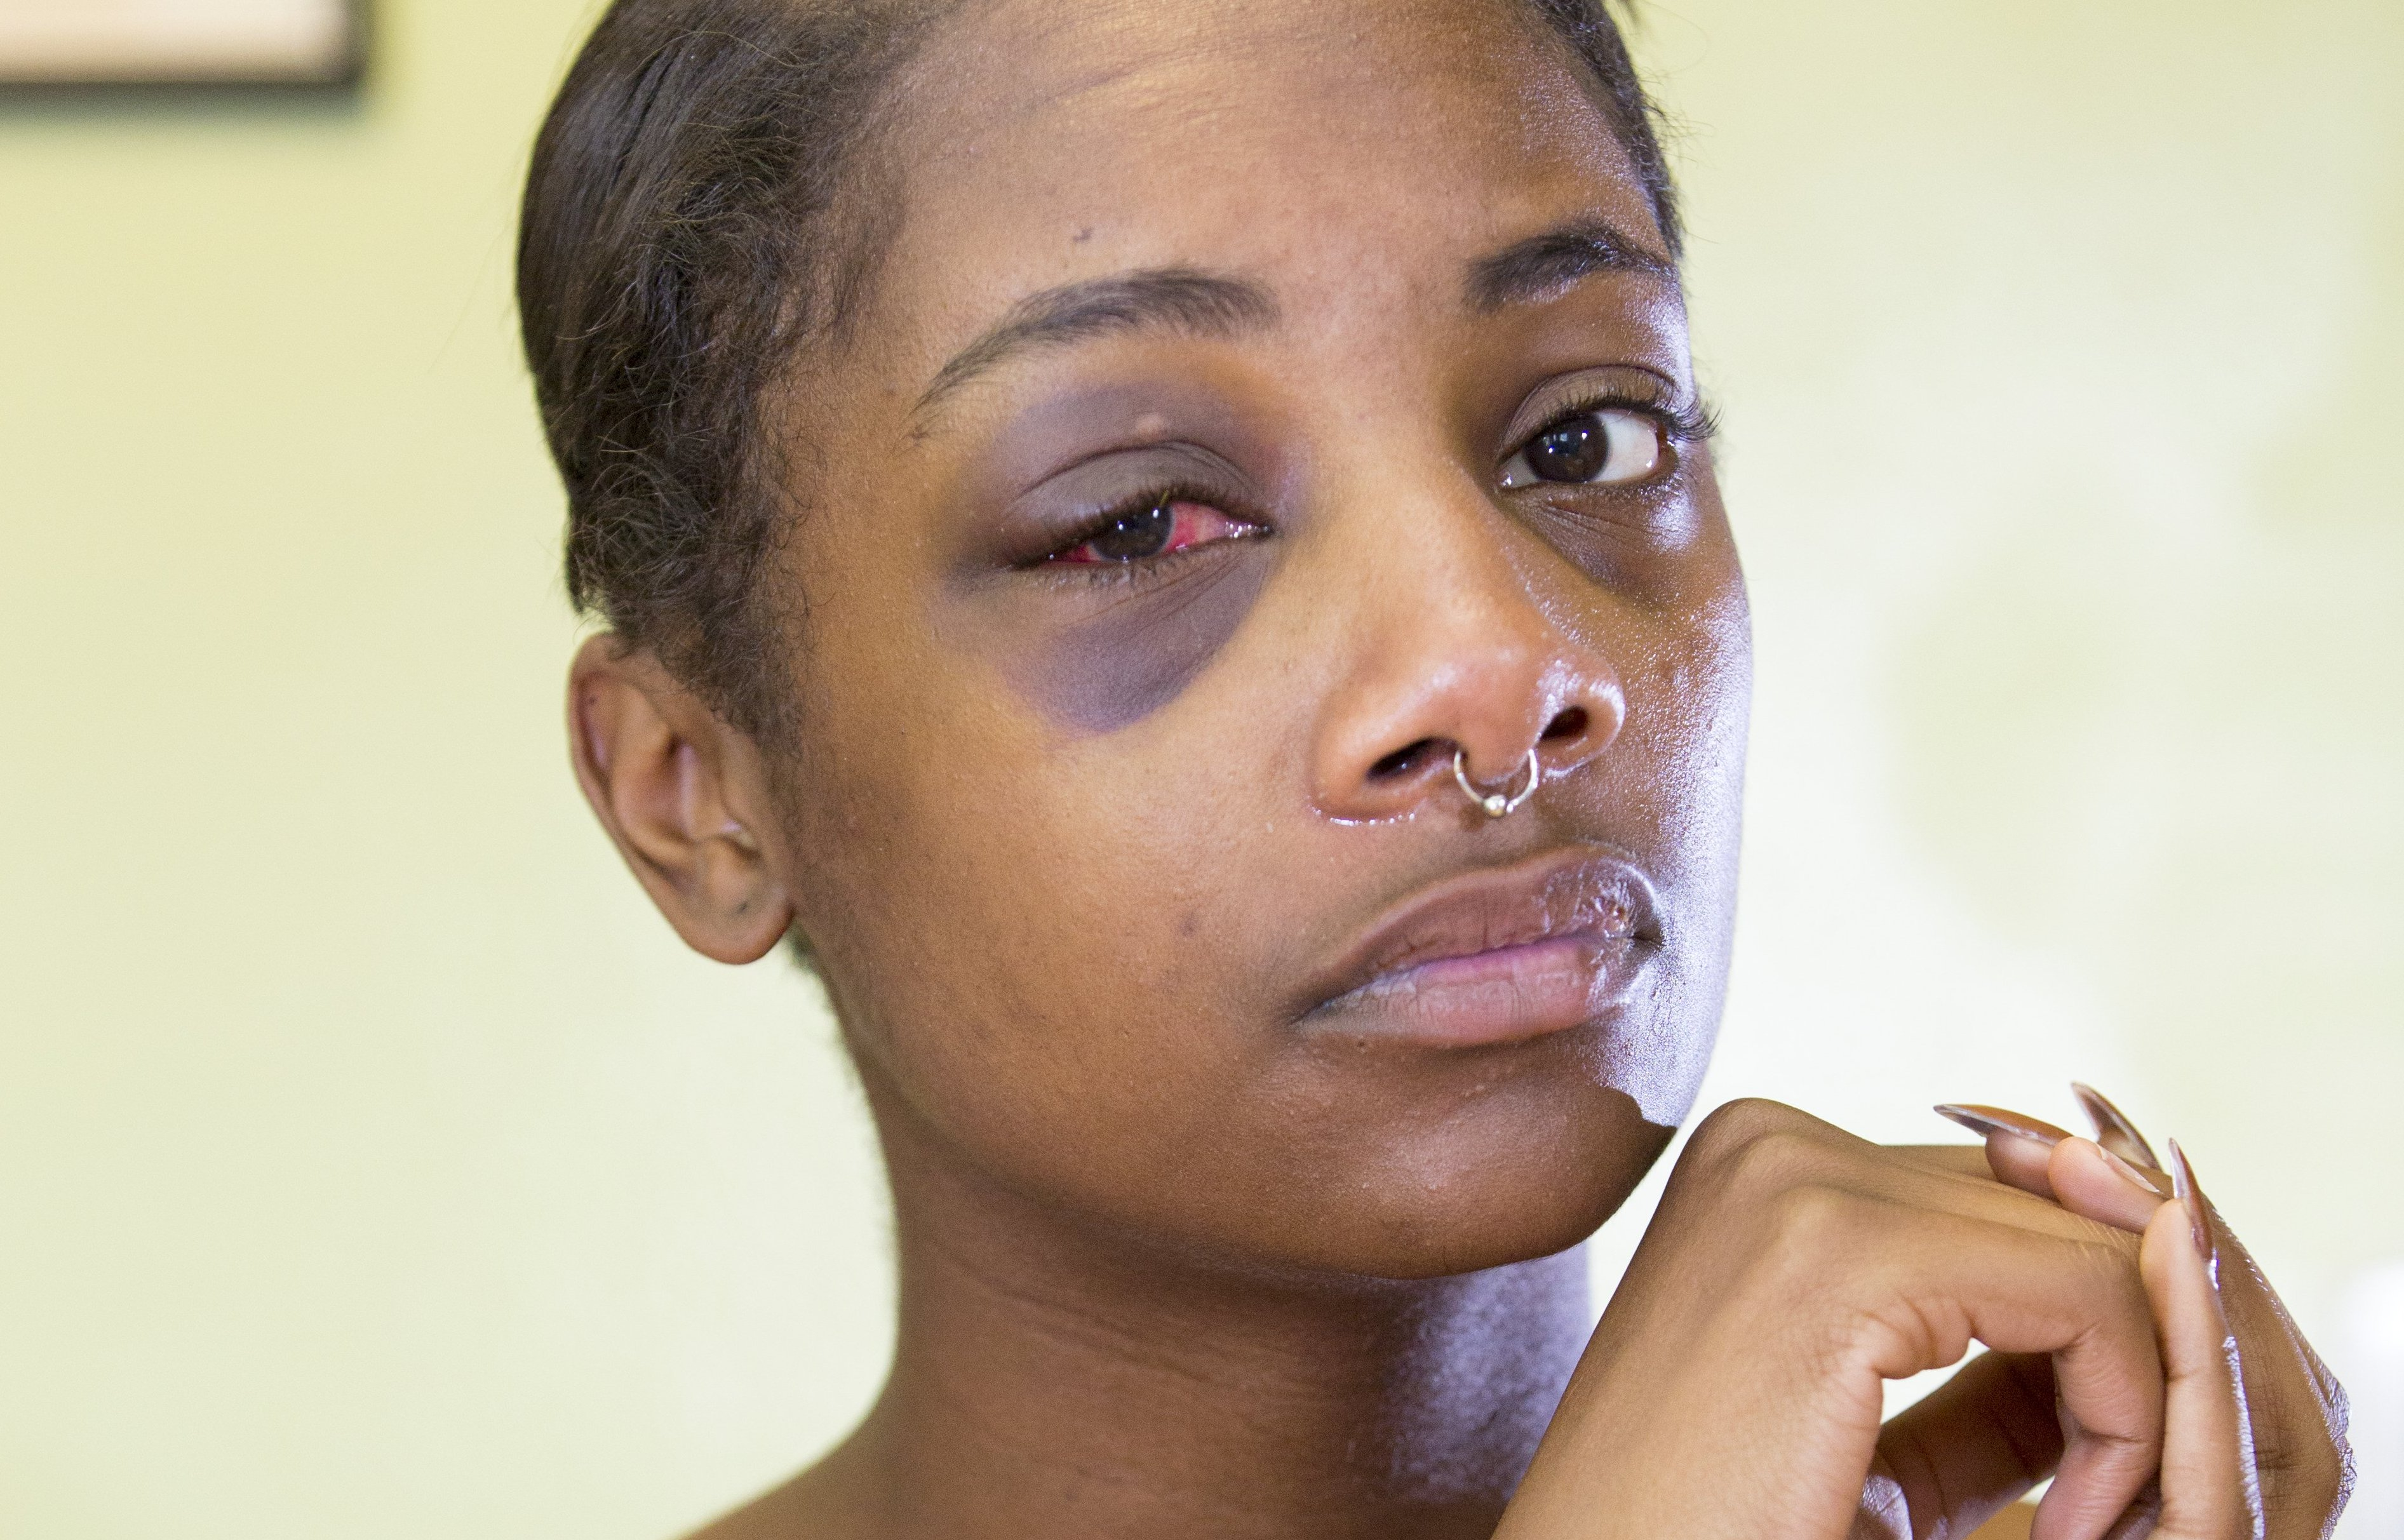 A physically battered woman